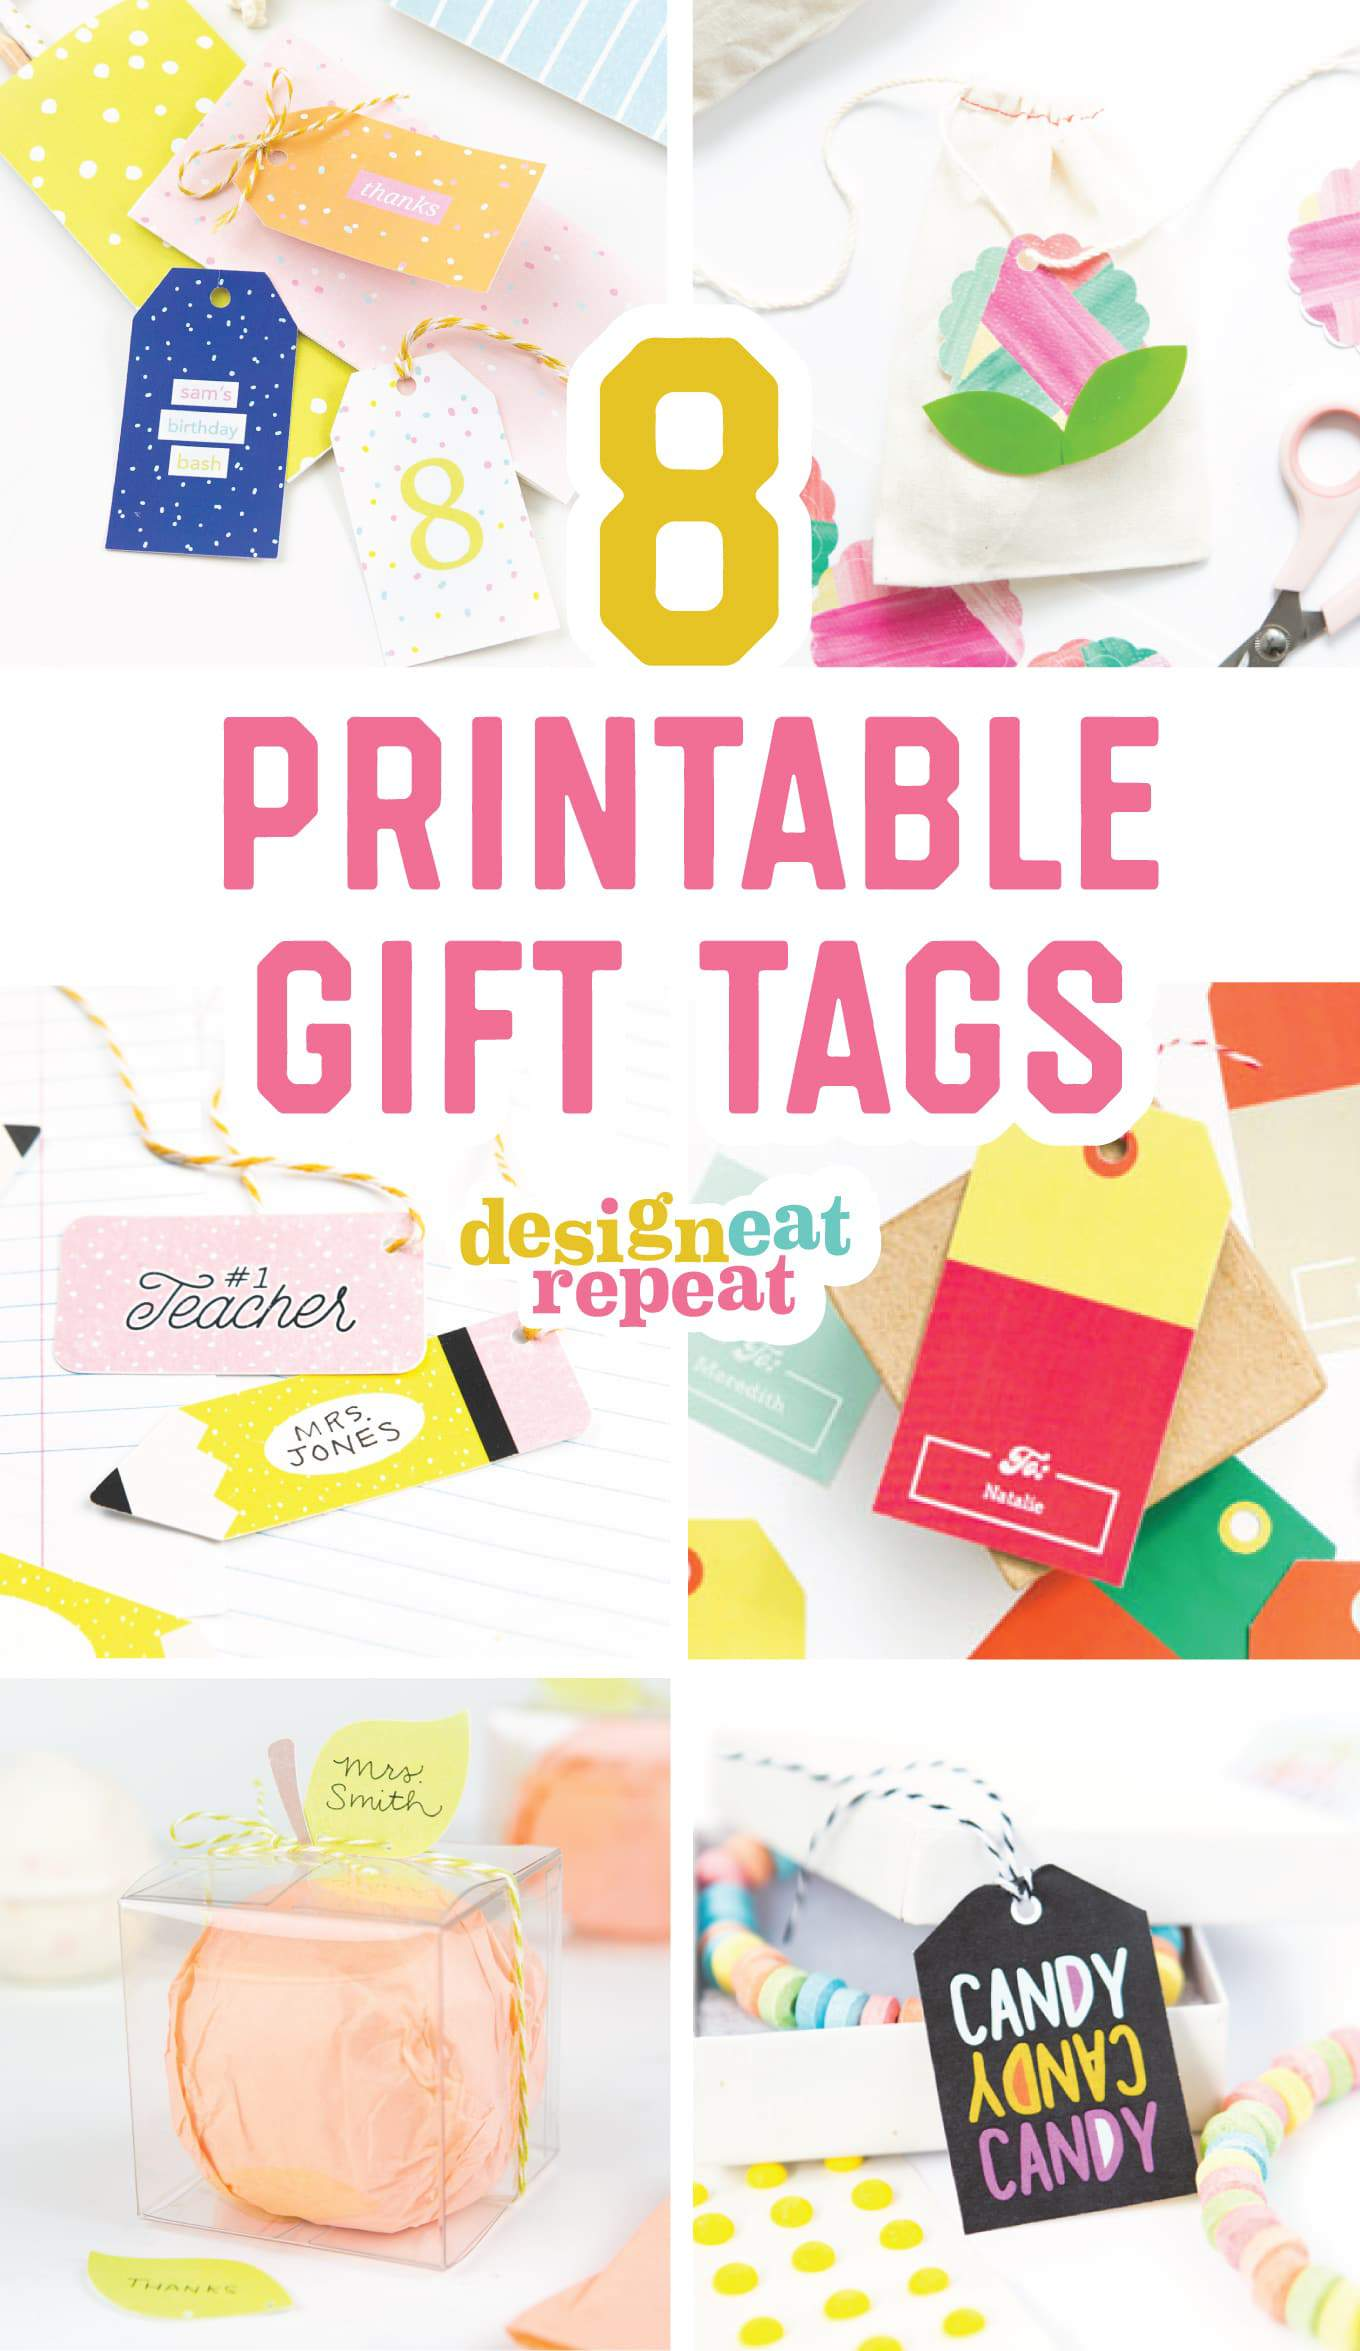 8 colorful free printable gift tags for any occasion whether youre putting together last minute party favors birthday gifts or negle